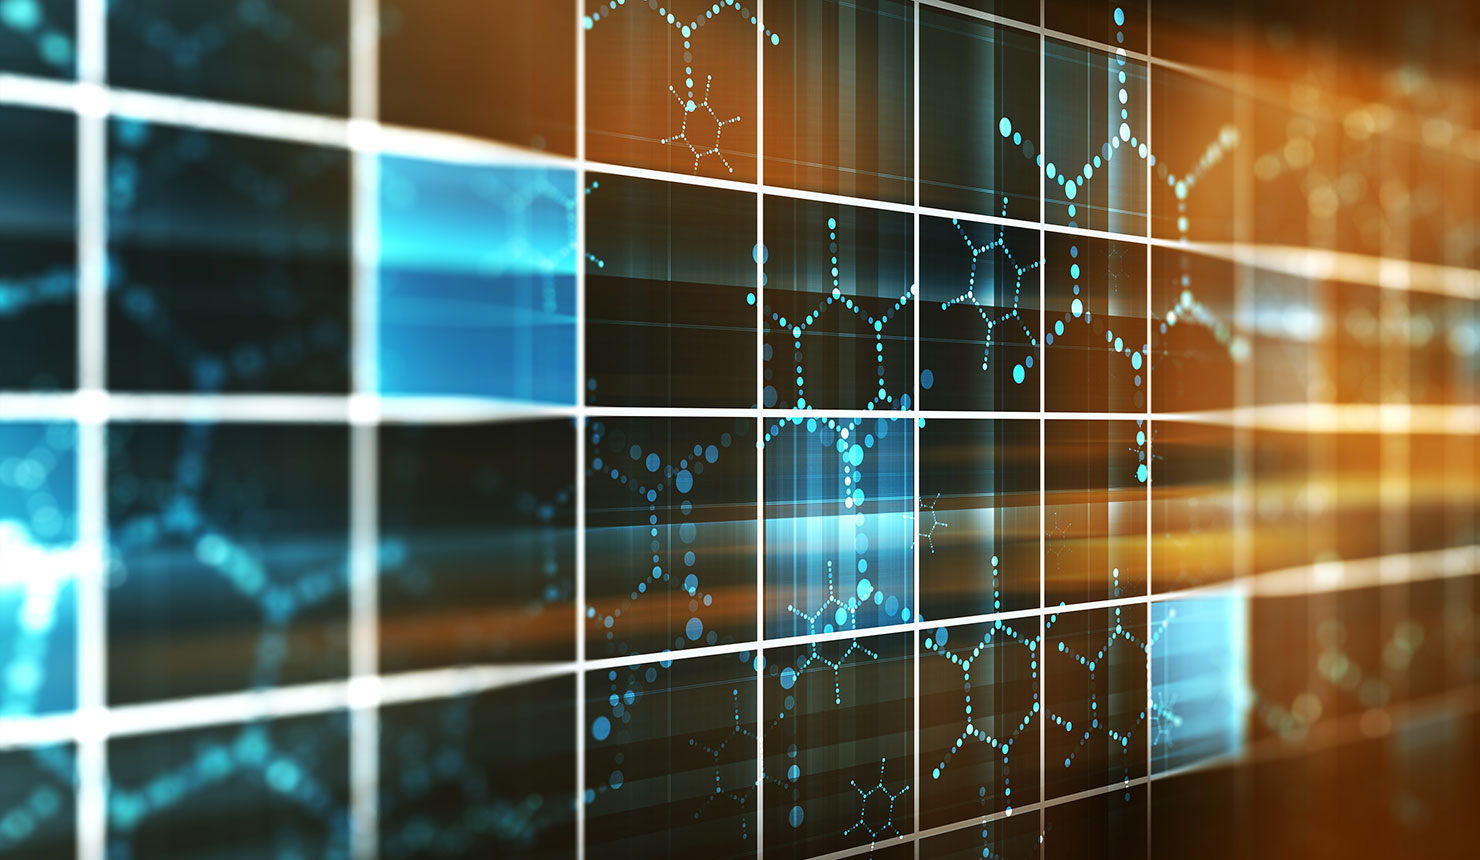 Geisel Announces New Master's Degree in Health Data Science